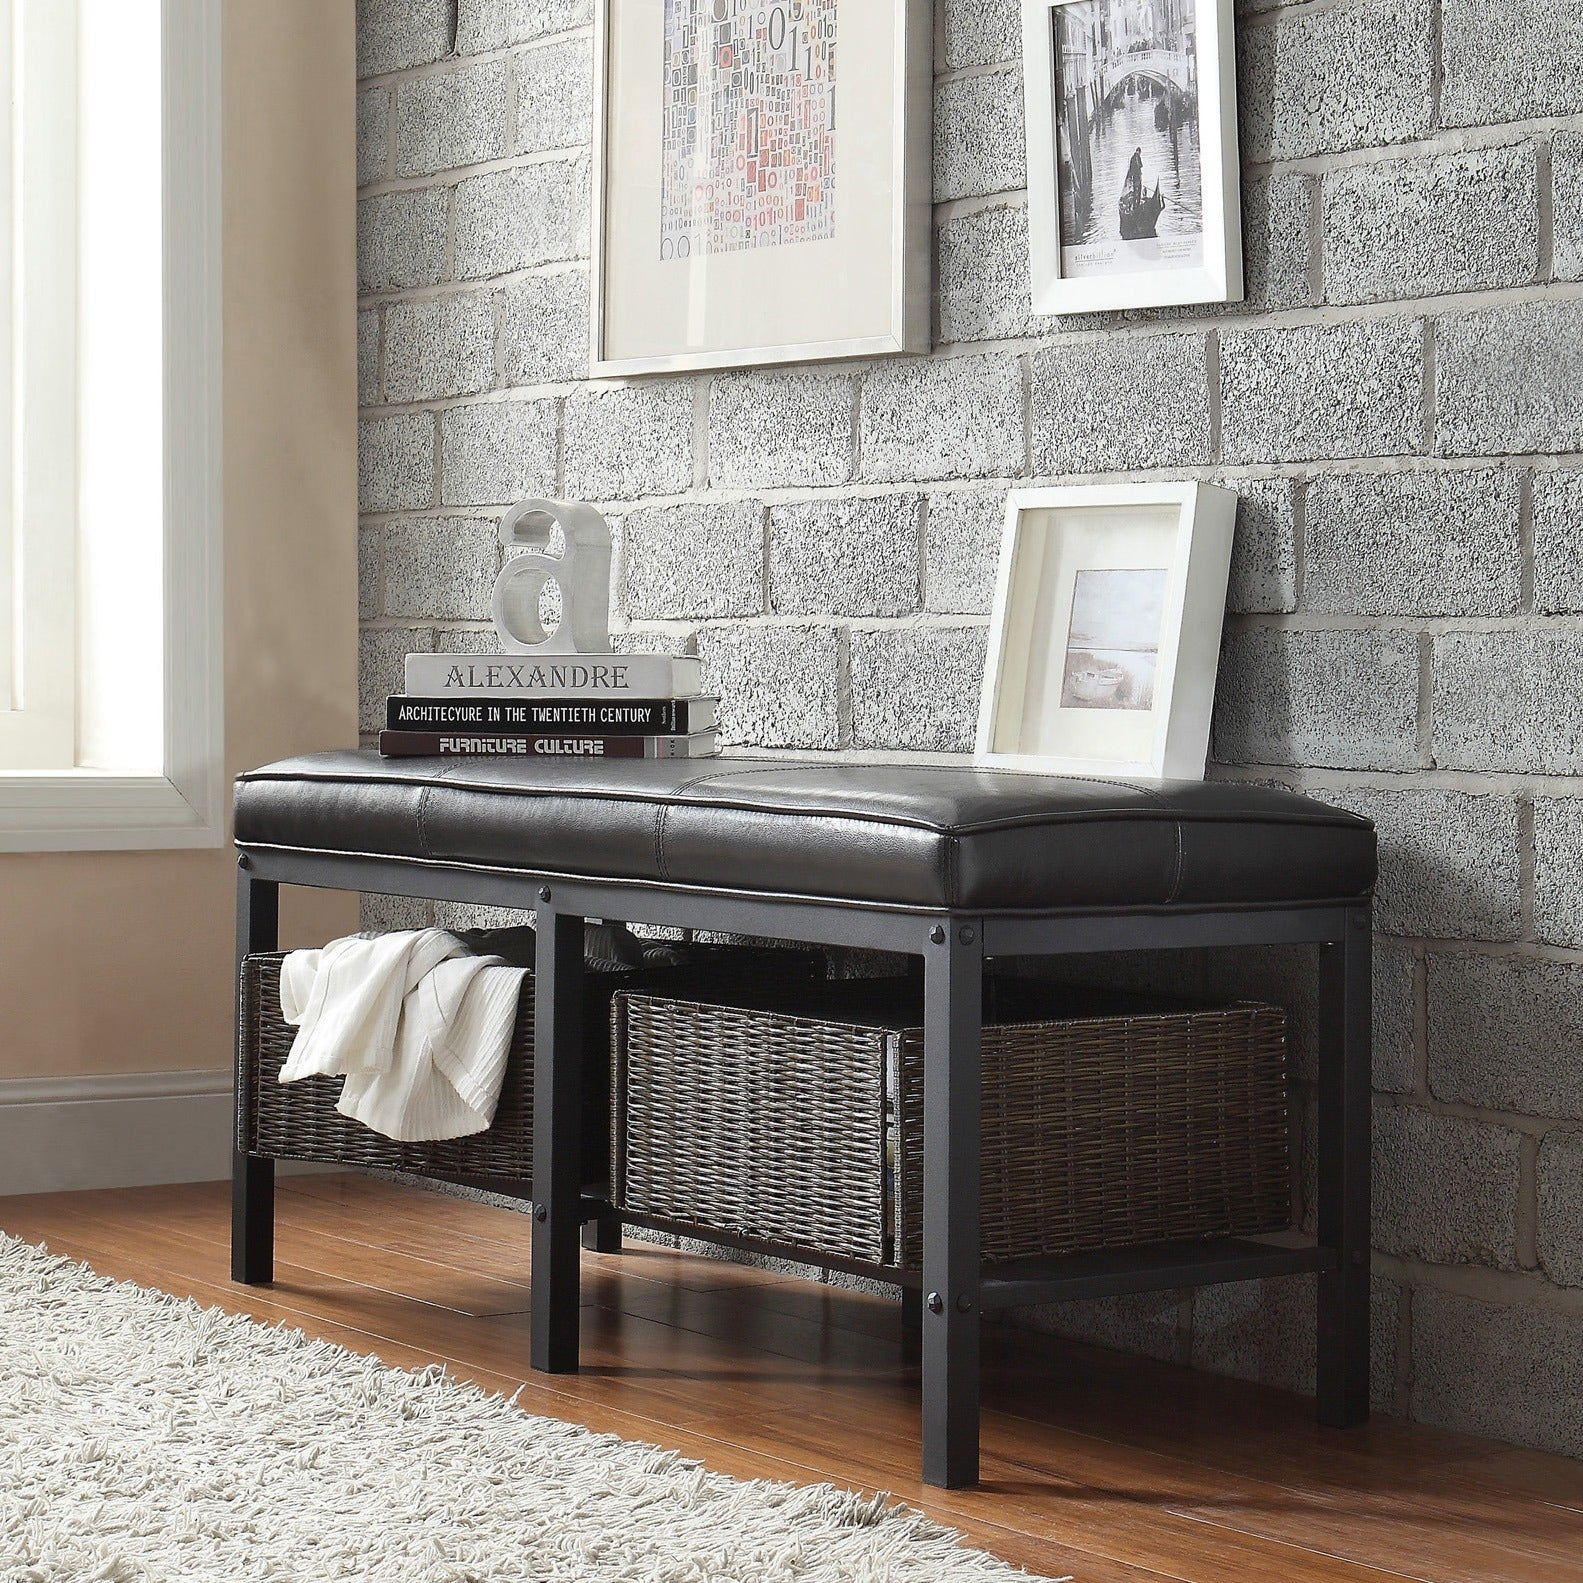 Myra II Black Brown Faux Leather Upholstered Modern Rustic Bench by iNSPIRE  Q Classic - Free Shipping Today - Overstock.com - 15950167